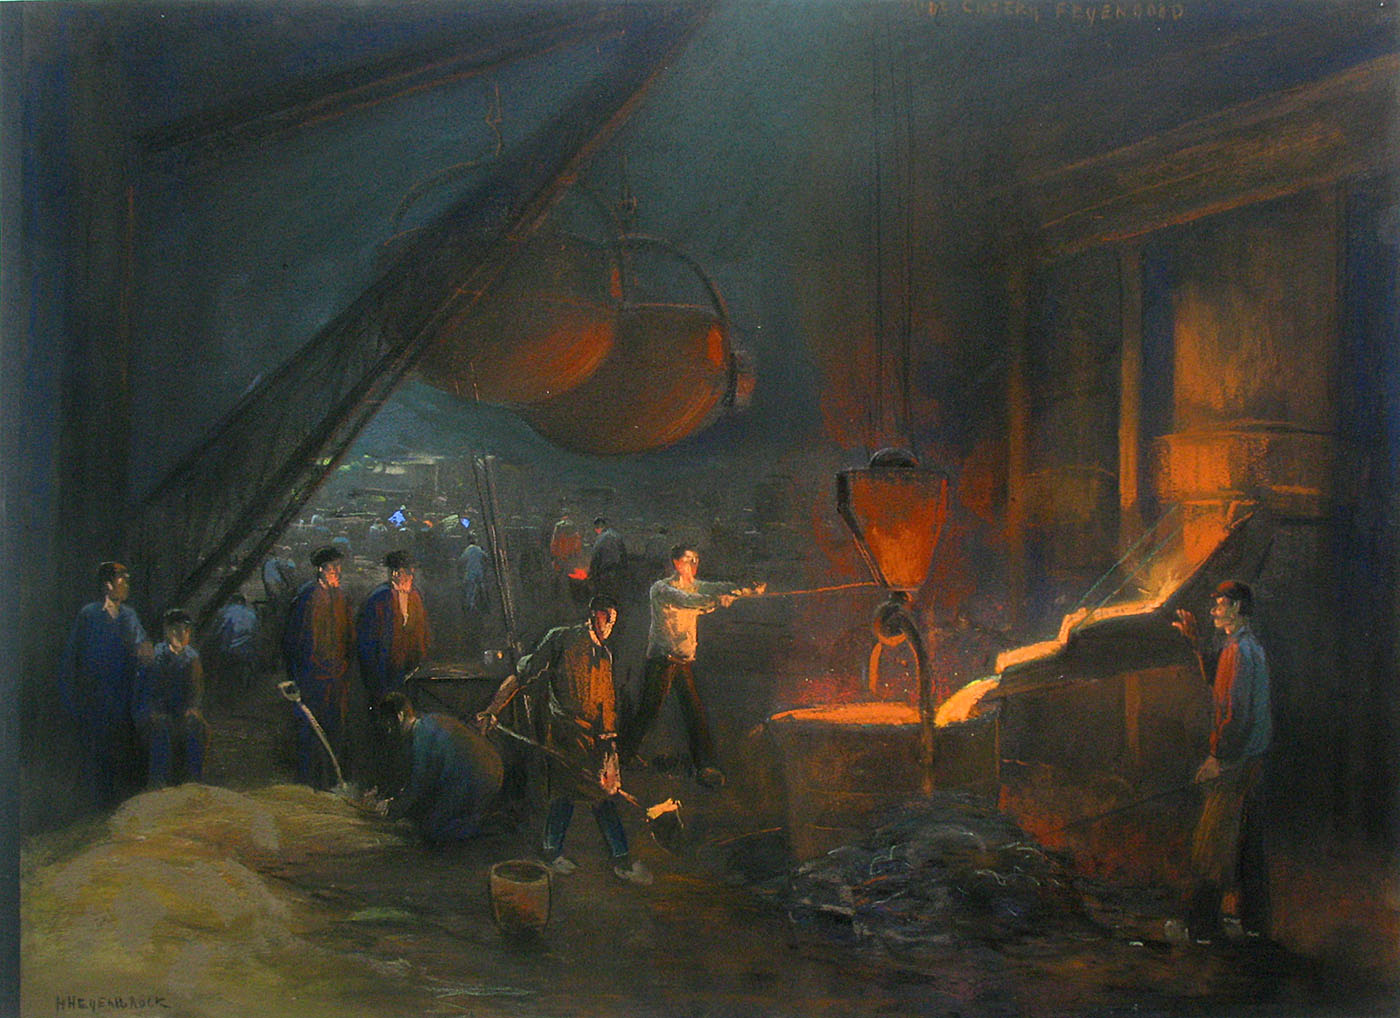 Machinefabriek (1)